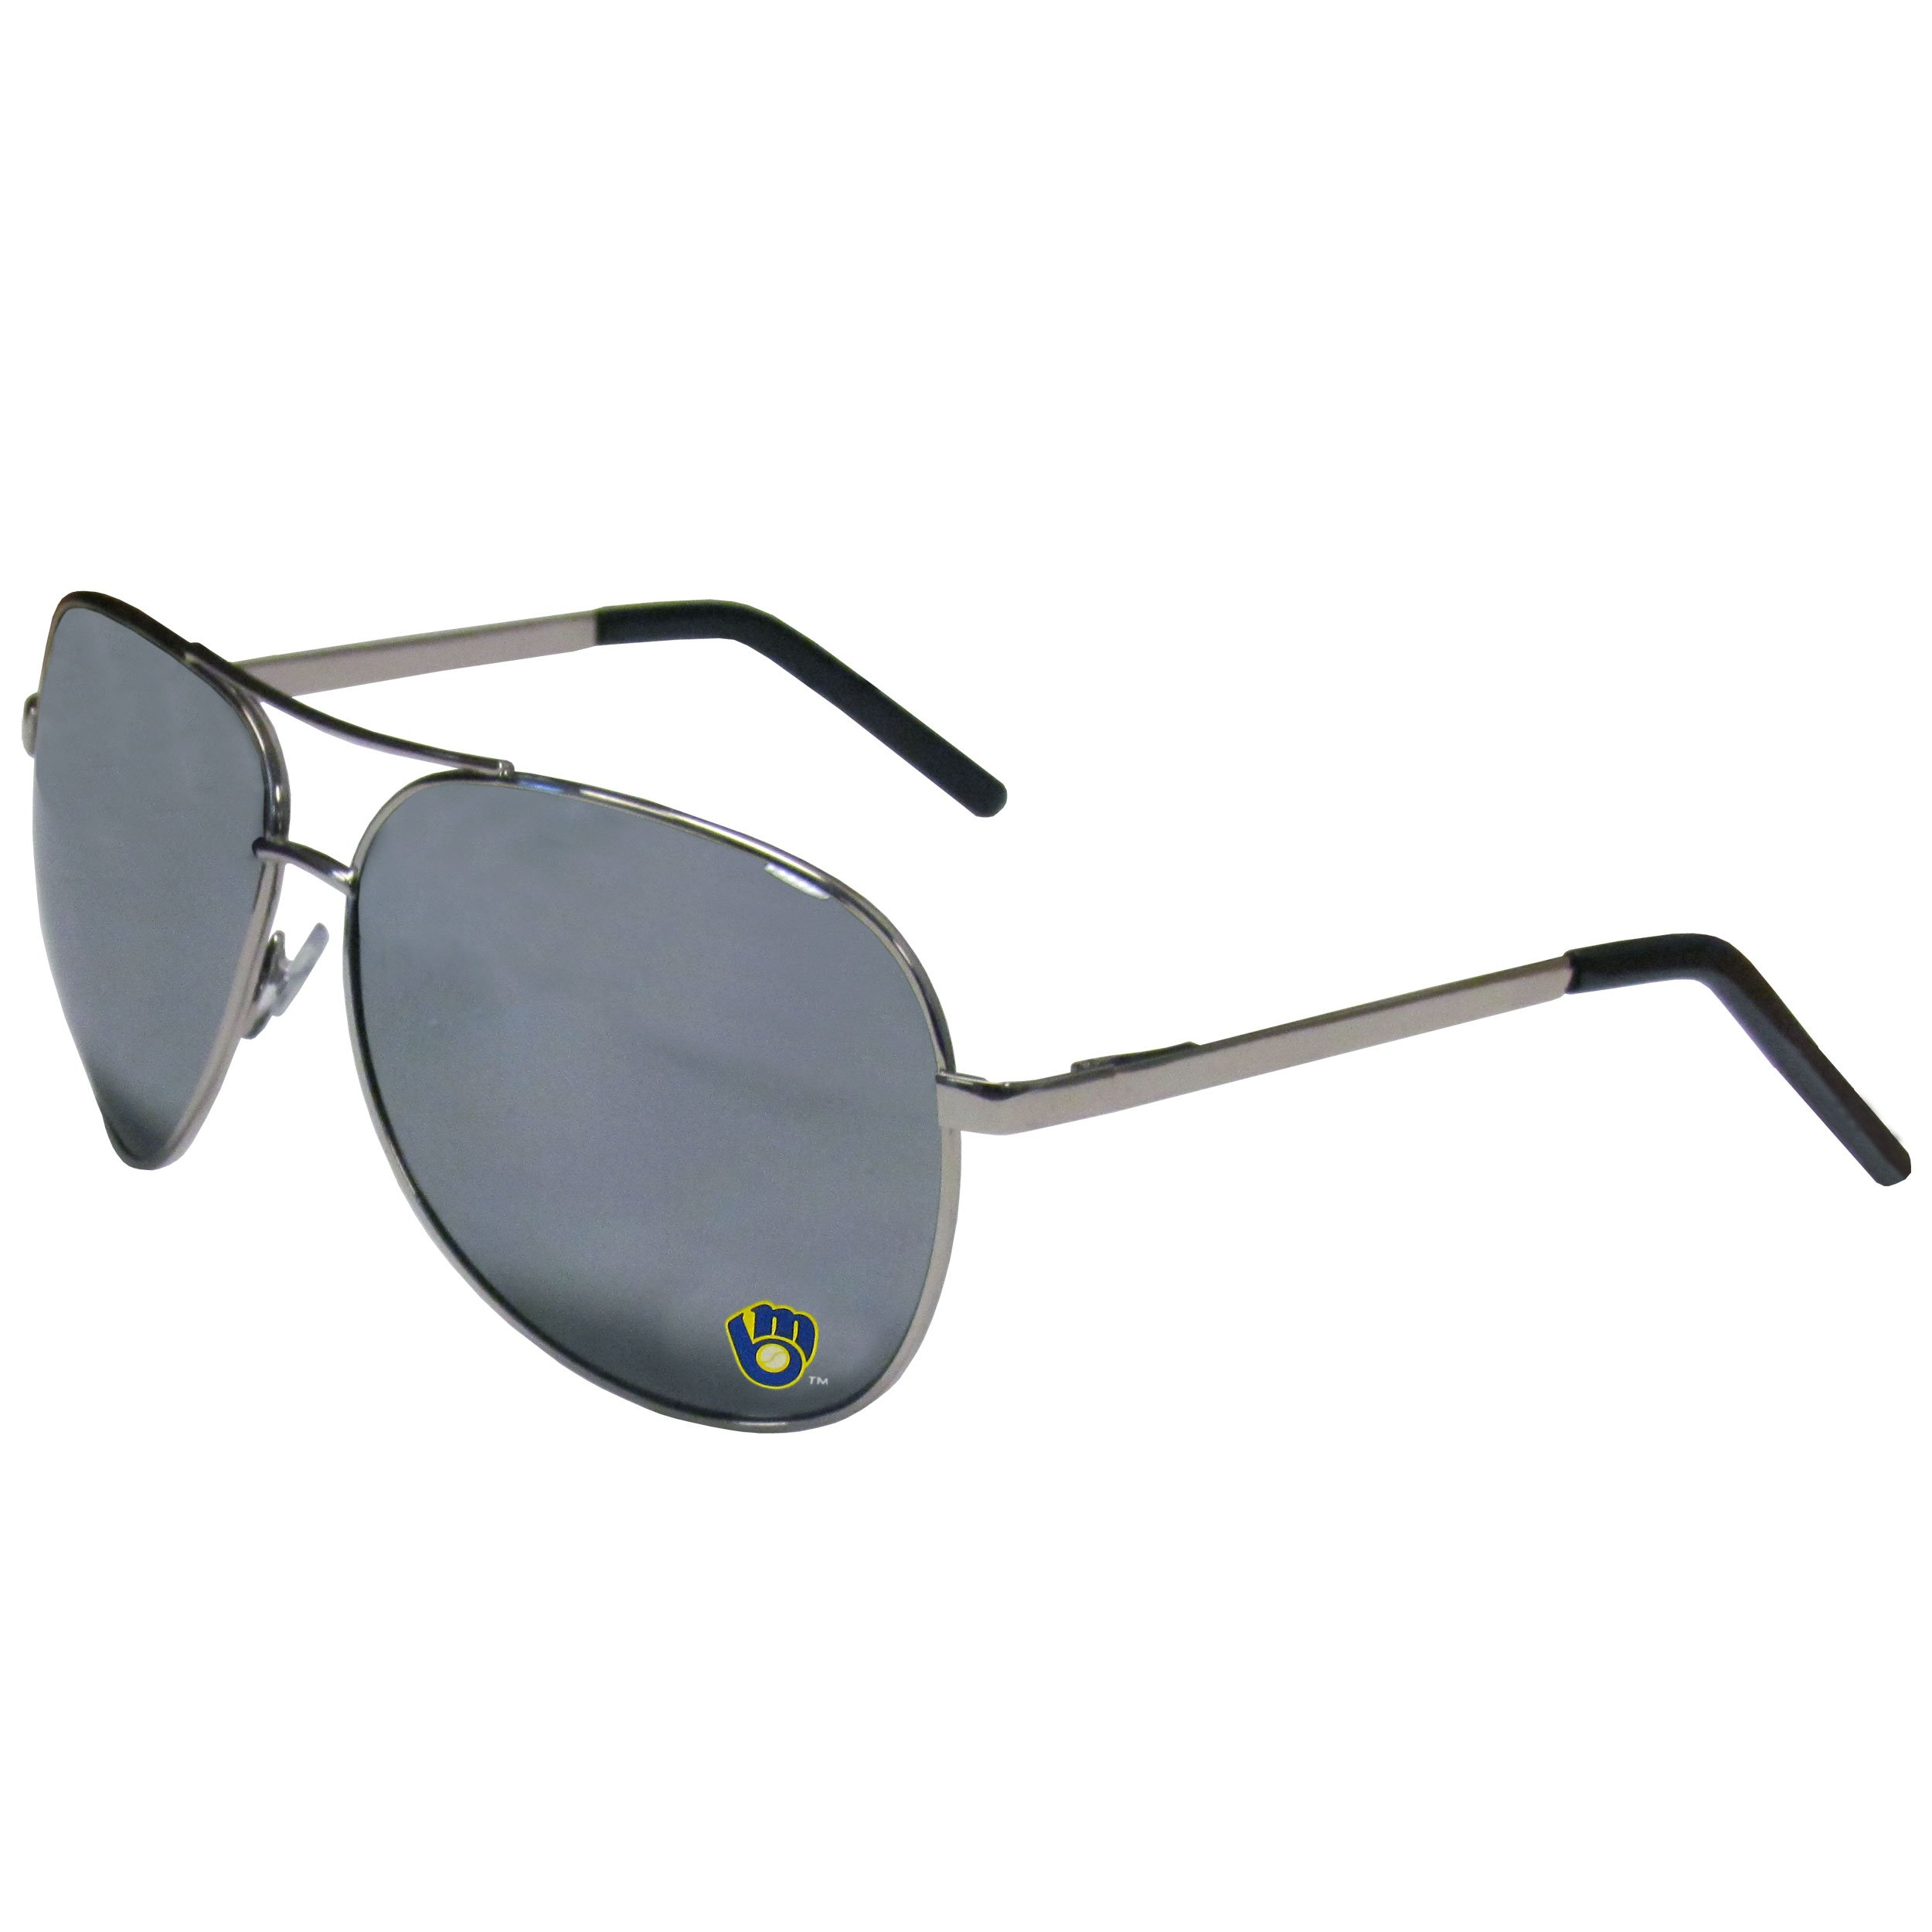 1514ec6fdd Get Quotations · MLB Milwaukee Brewers Aviator Sunglasses